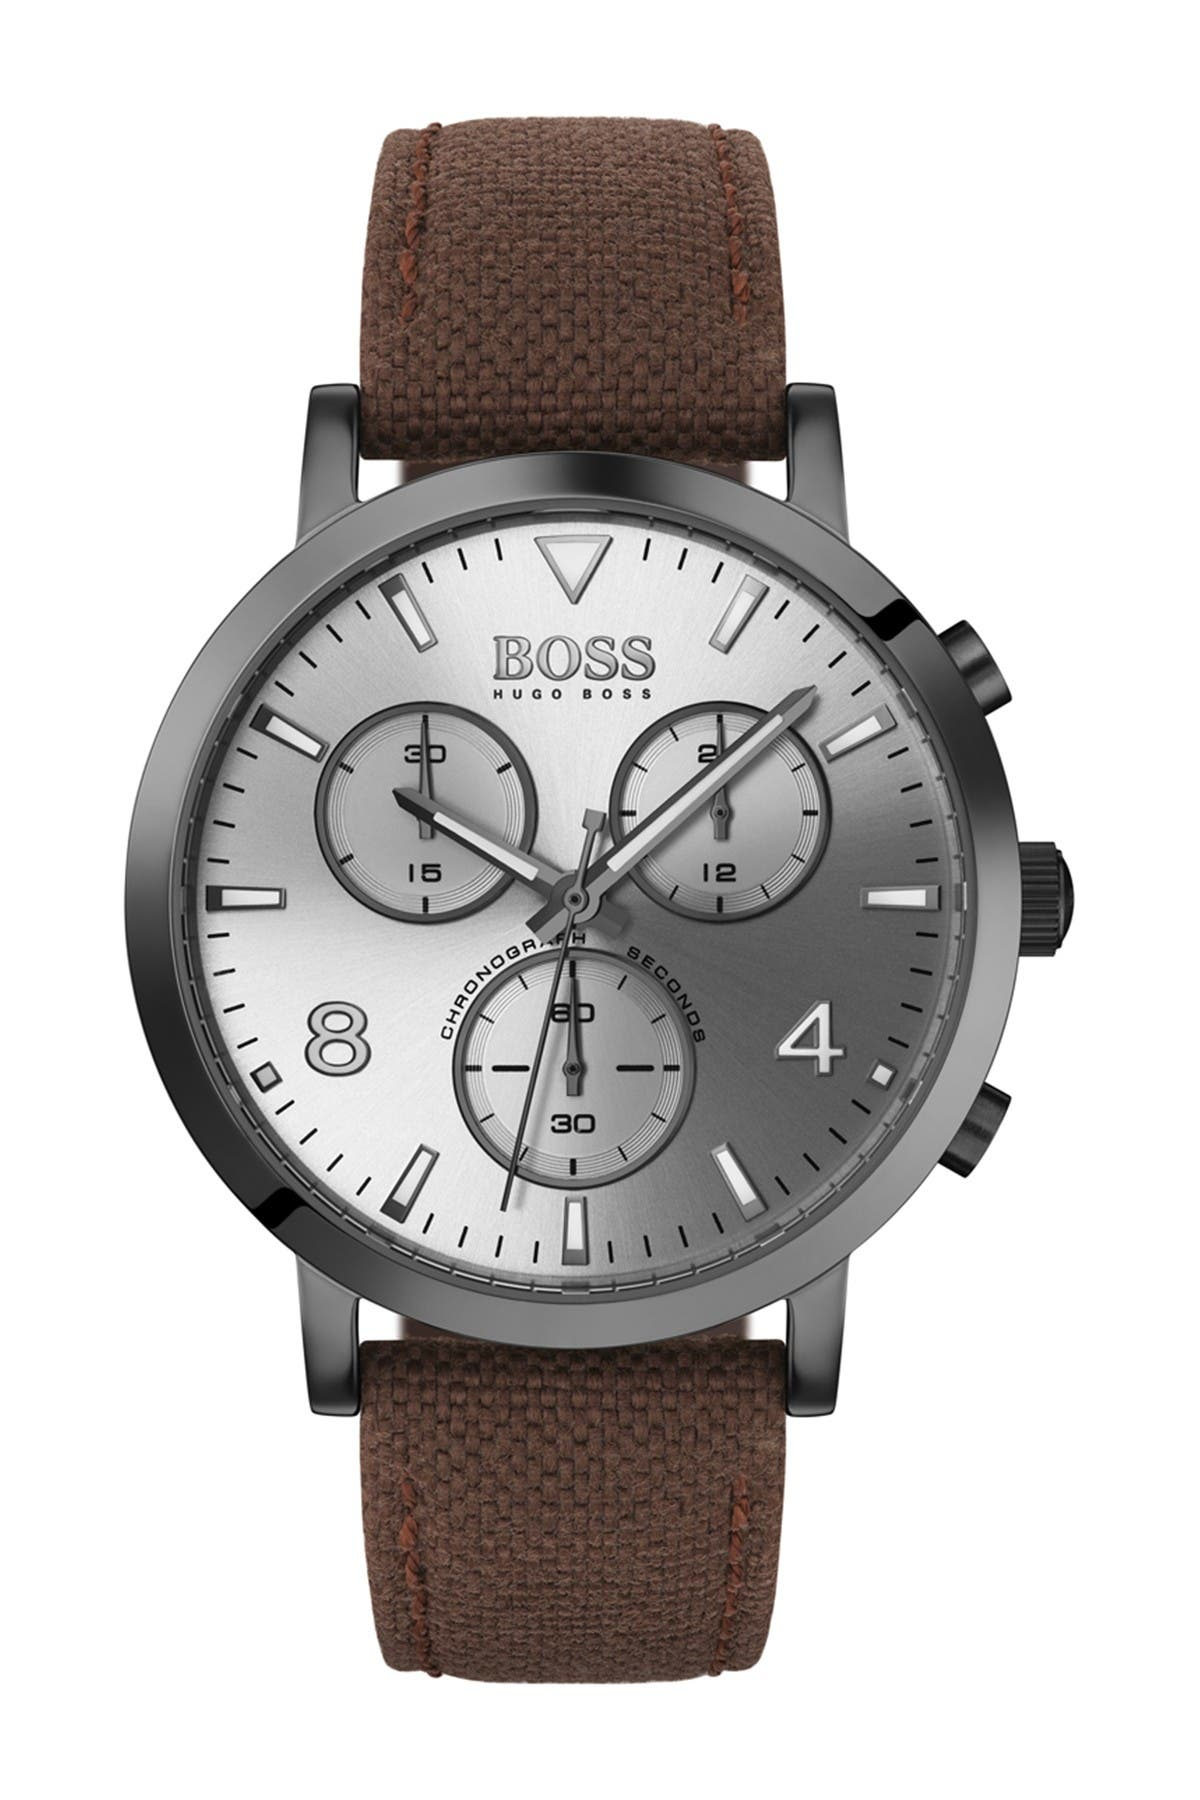 Image of BOSS Men's Spirit Leather Strap Watch, 42mm